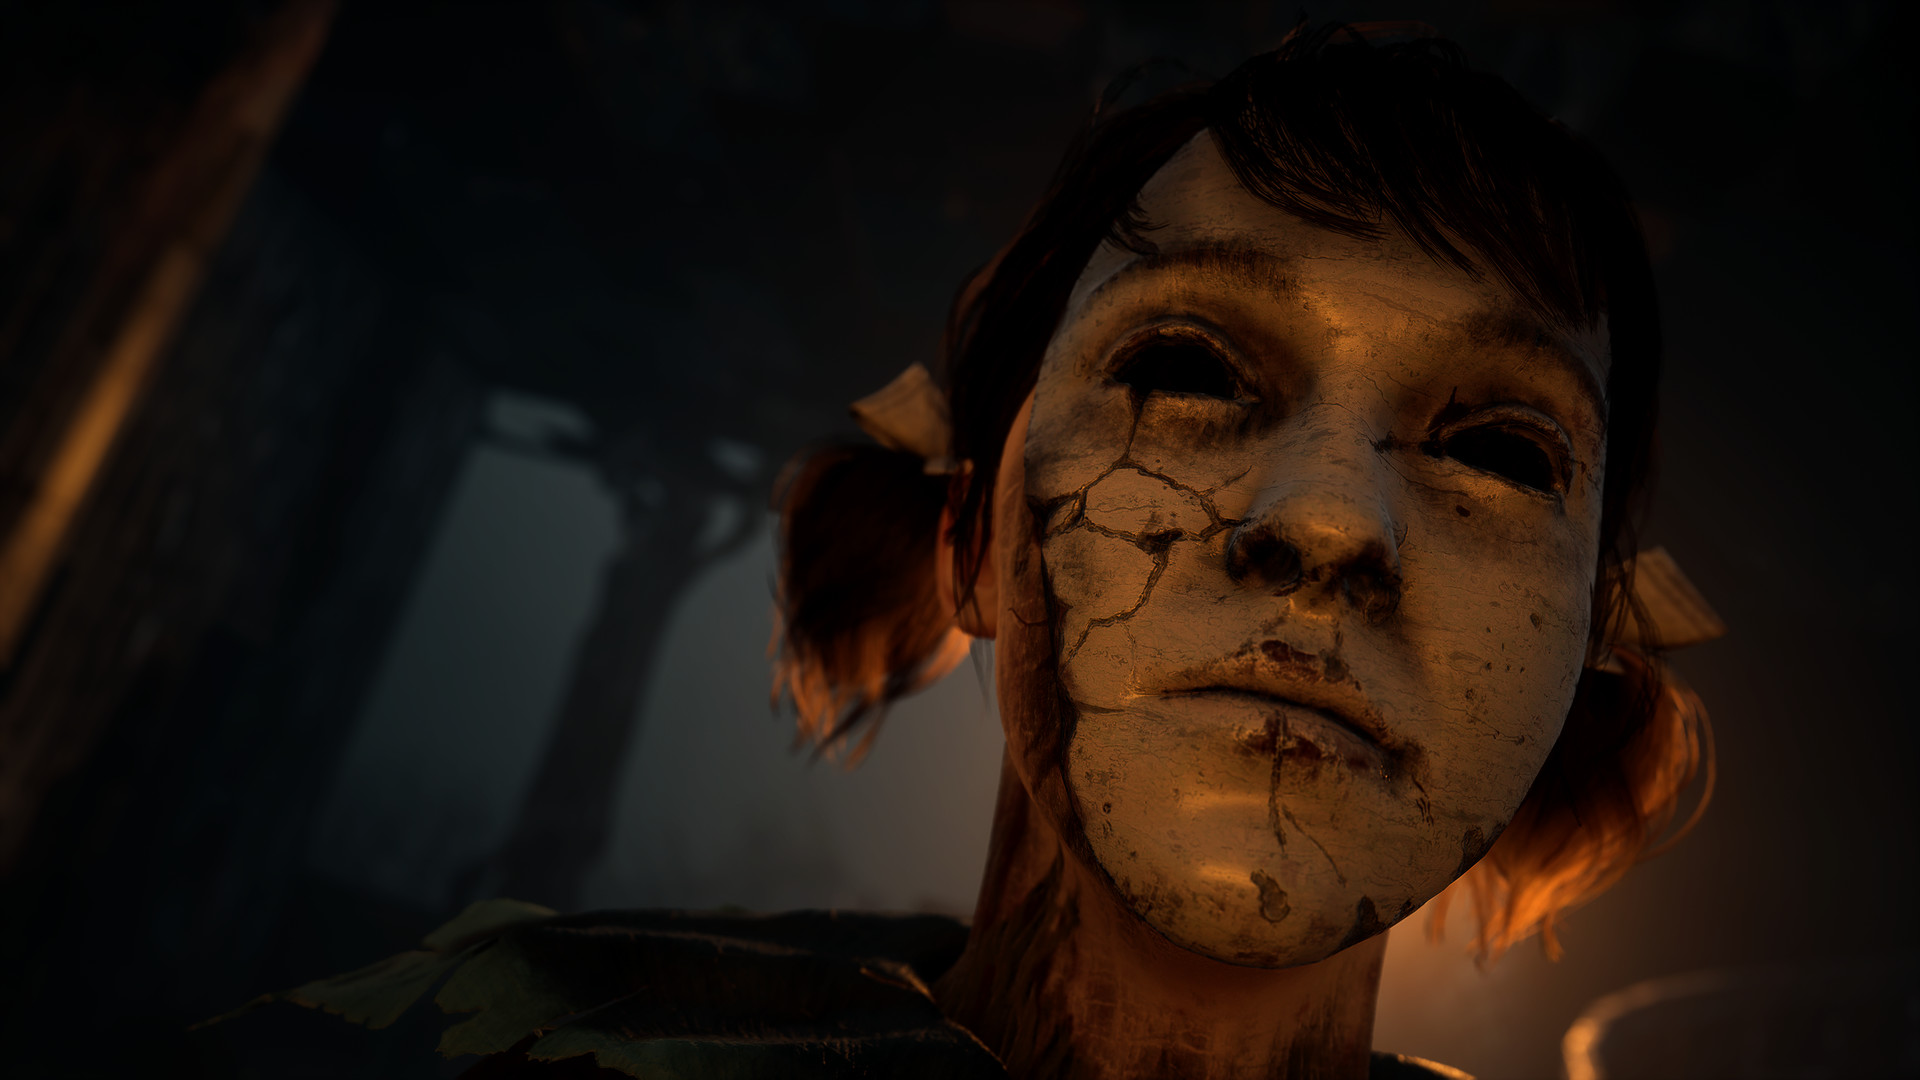 The Next Best Horror Game Might Be The Medium